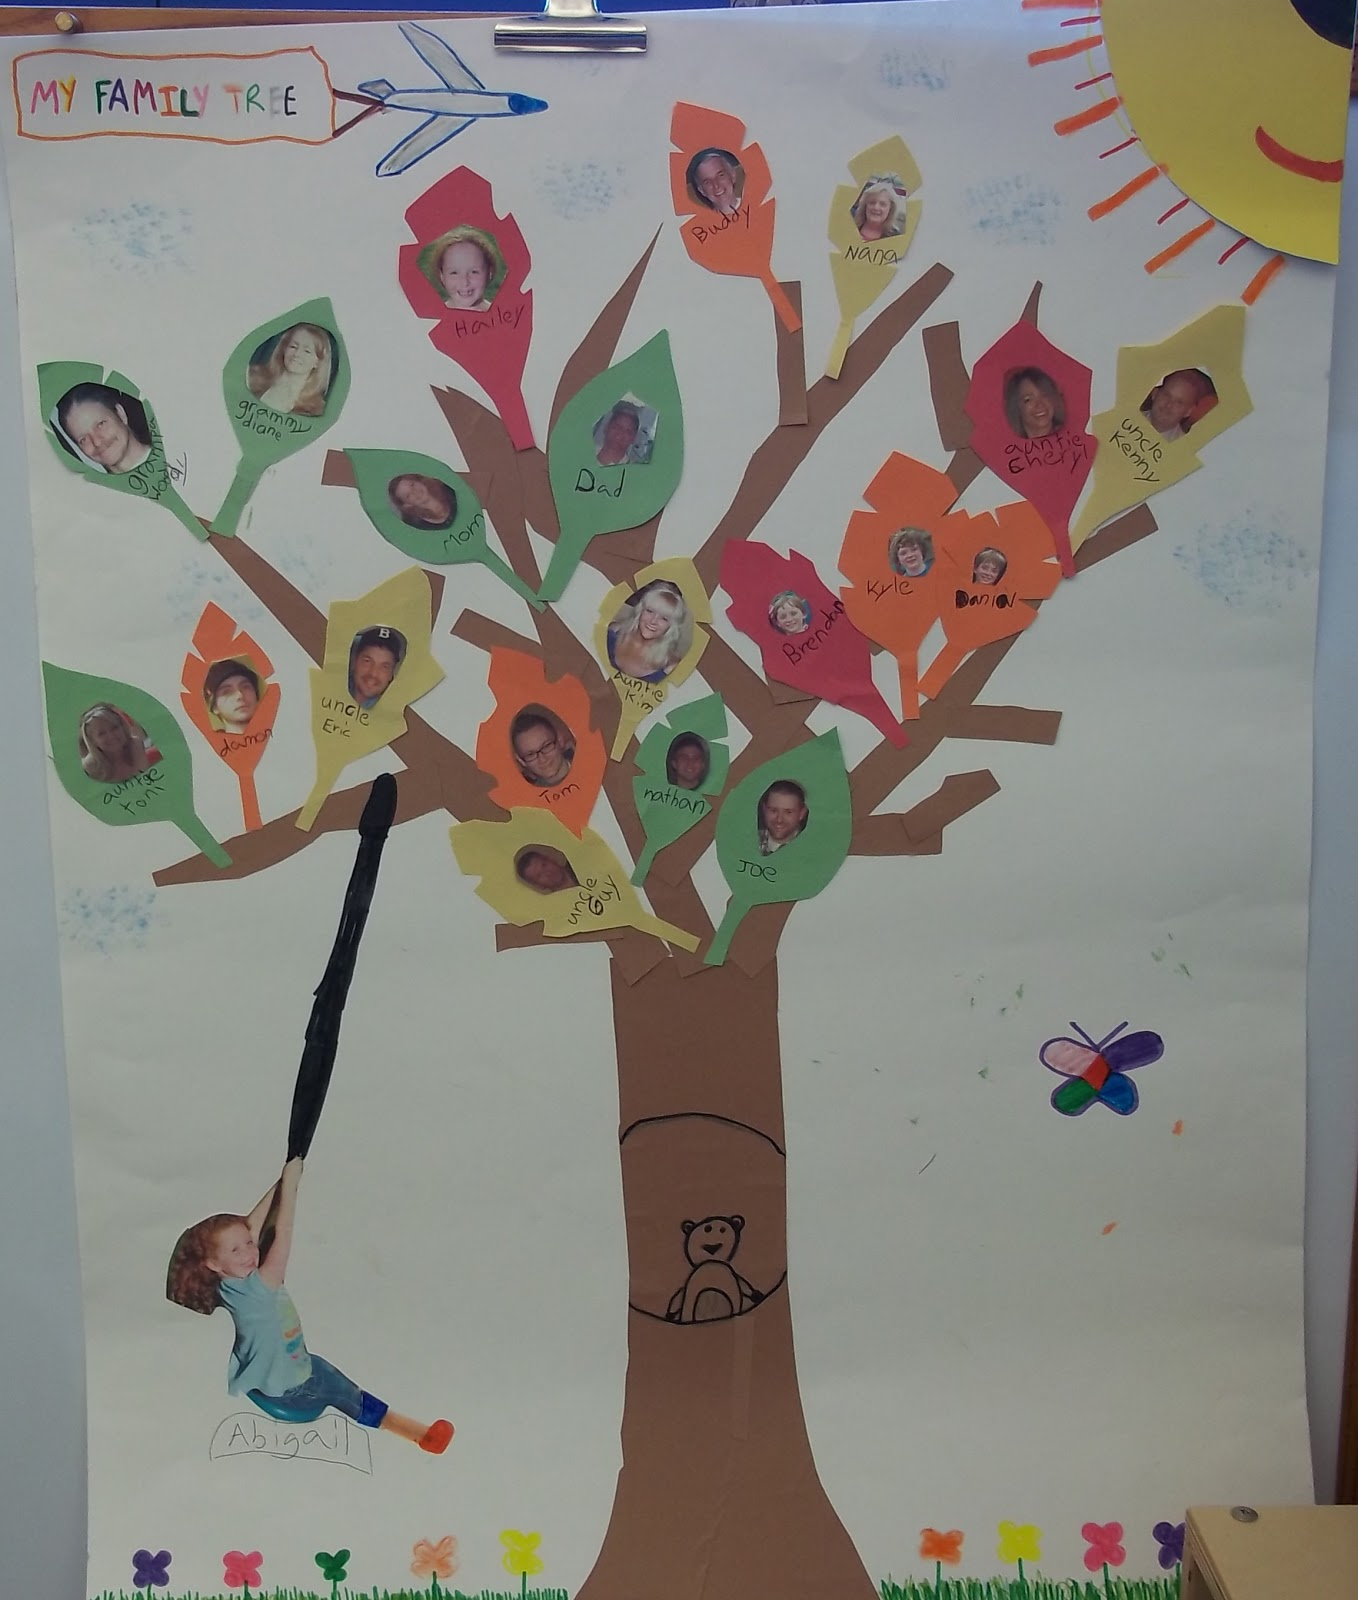 family tree project Family tree layout family tree designs family tree templates family tree chart family tree wall family tree projects family trees free family tree family tree book forward i like this one a lot if we could modernize it and give it more of a pen & ink feel.